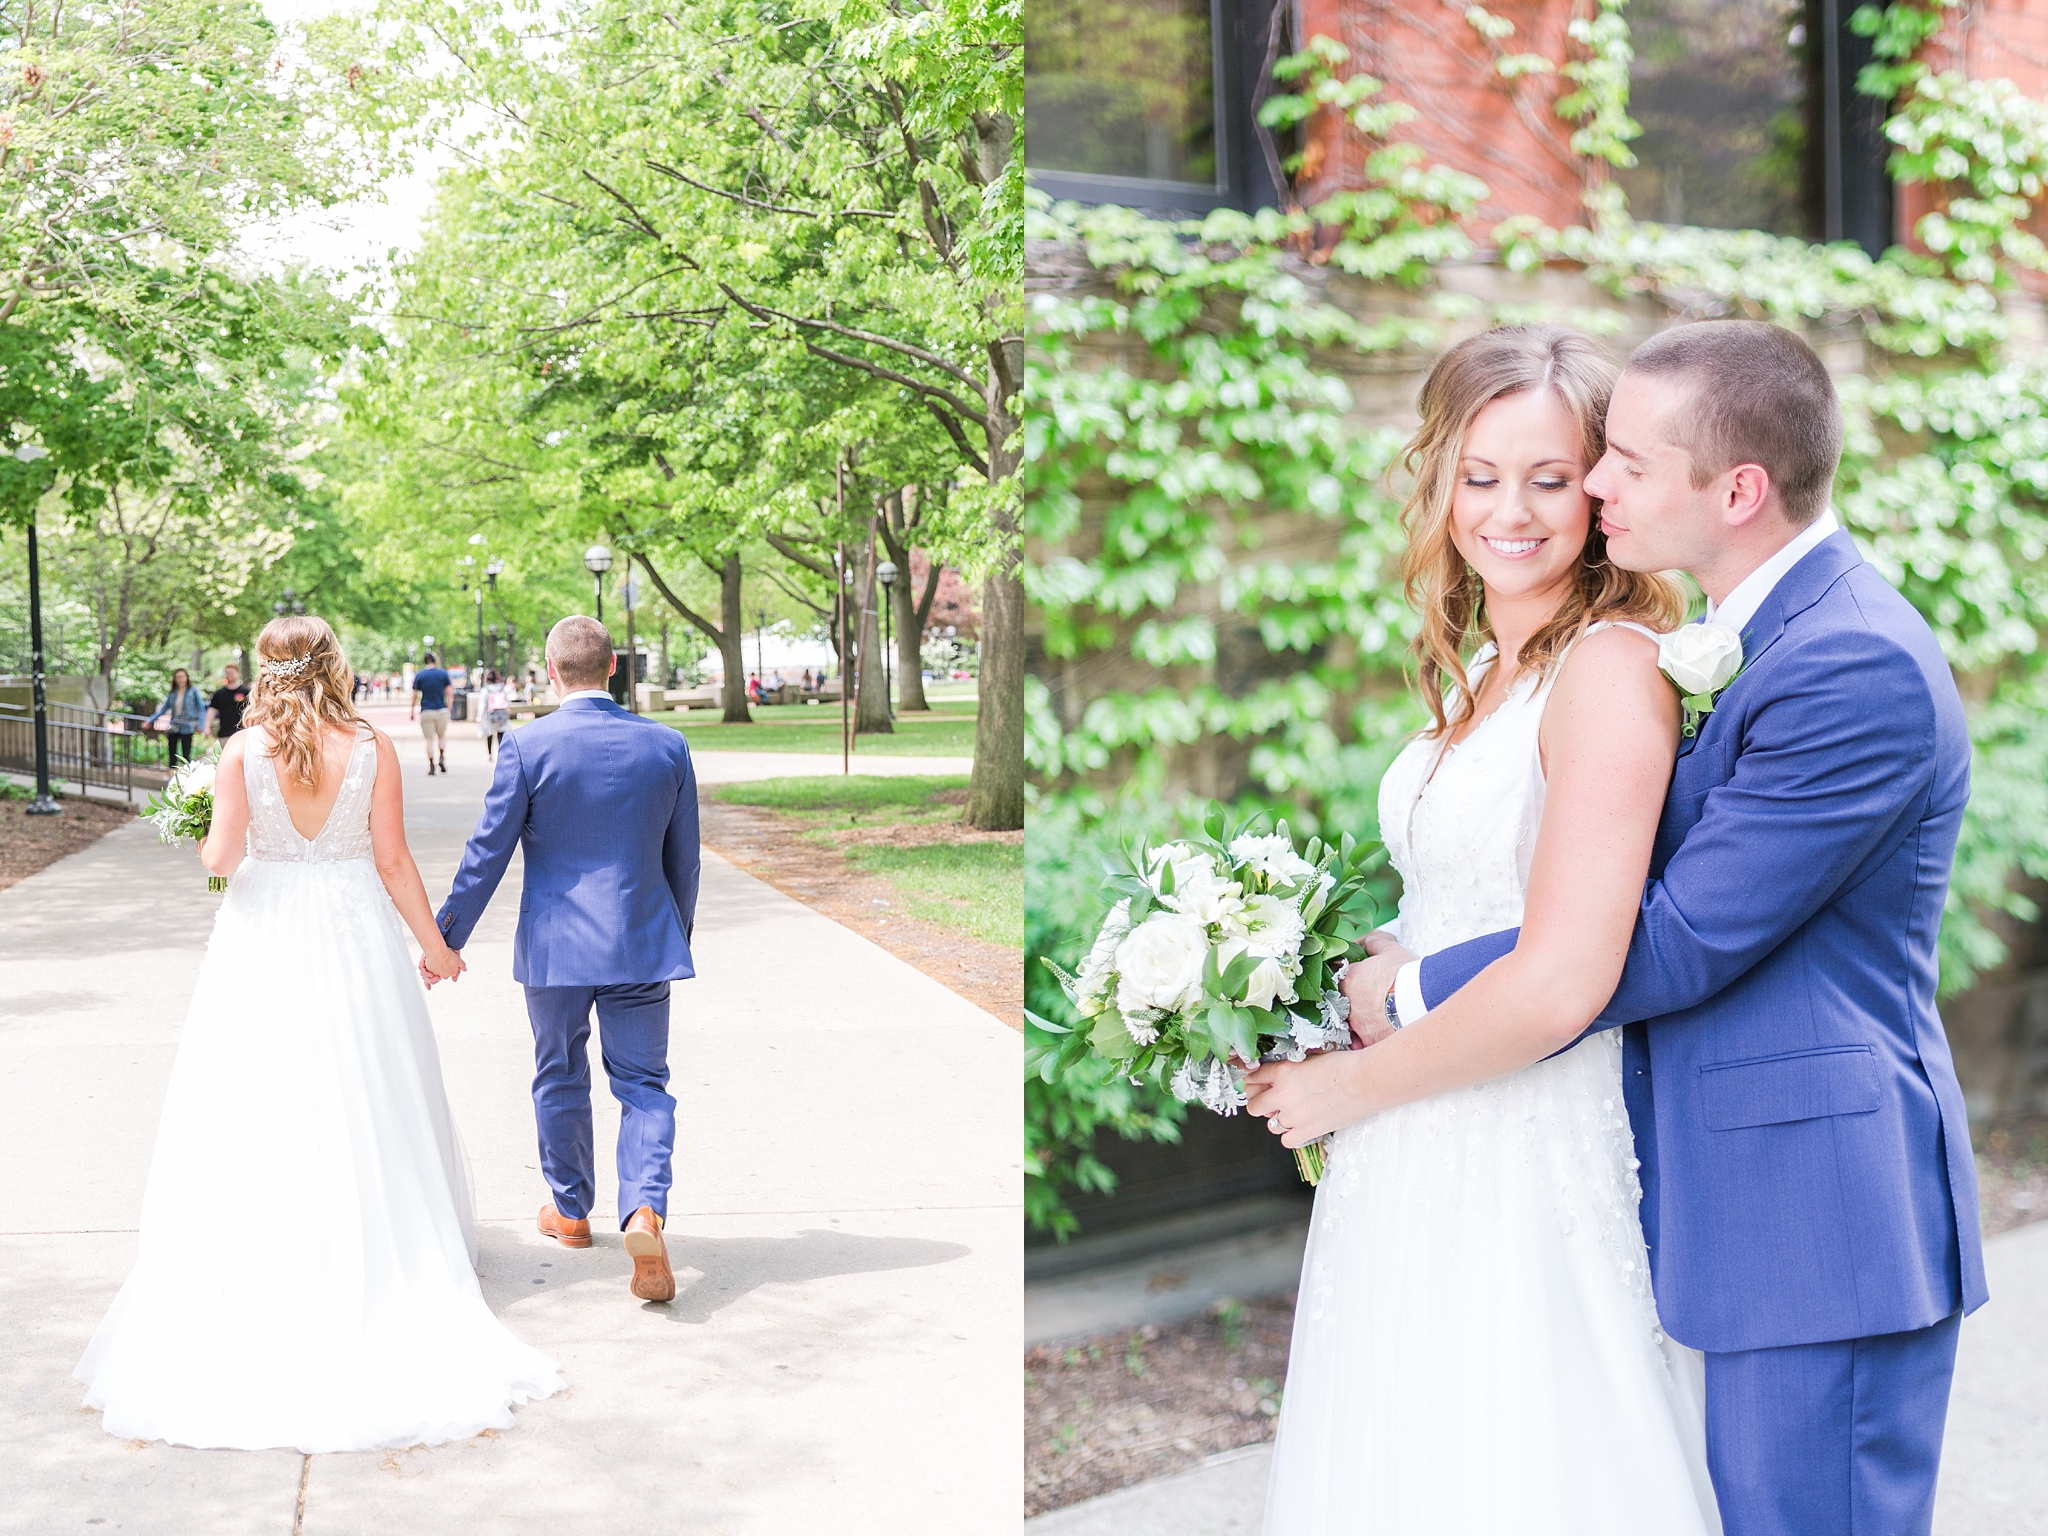 joyful-candid-laid-back-wedding-photos-in-ann-arbor-michigan-and-at-the-eagle-crest-golf-resort-by-courtney-carolyn-photography_0052.jpg